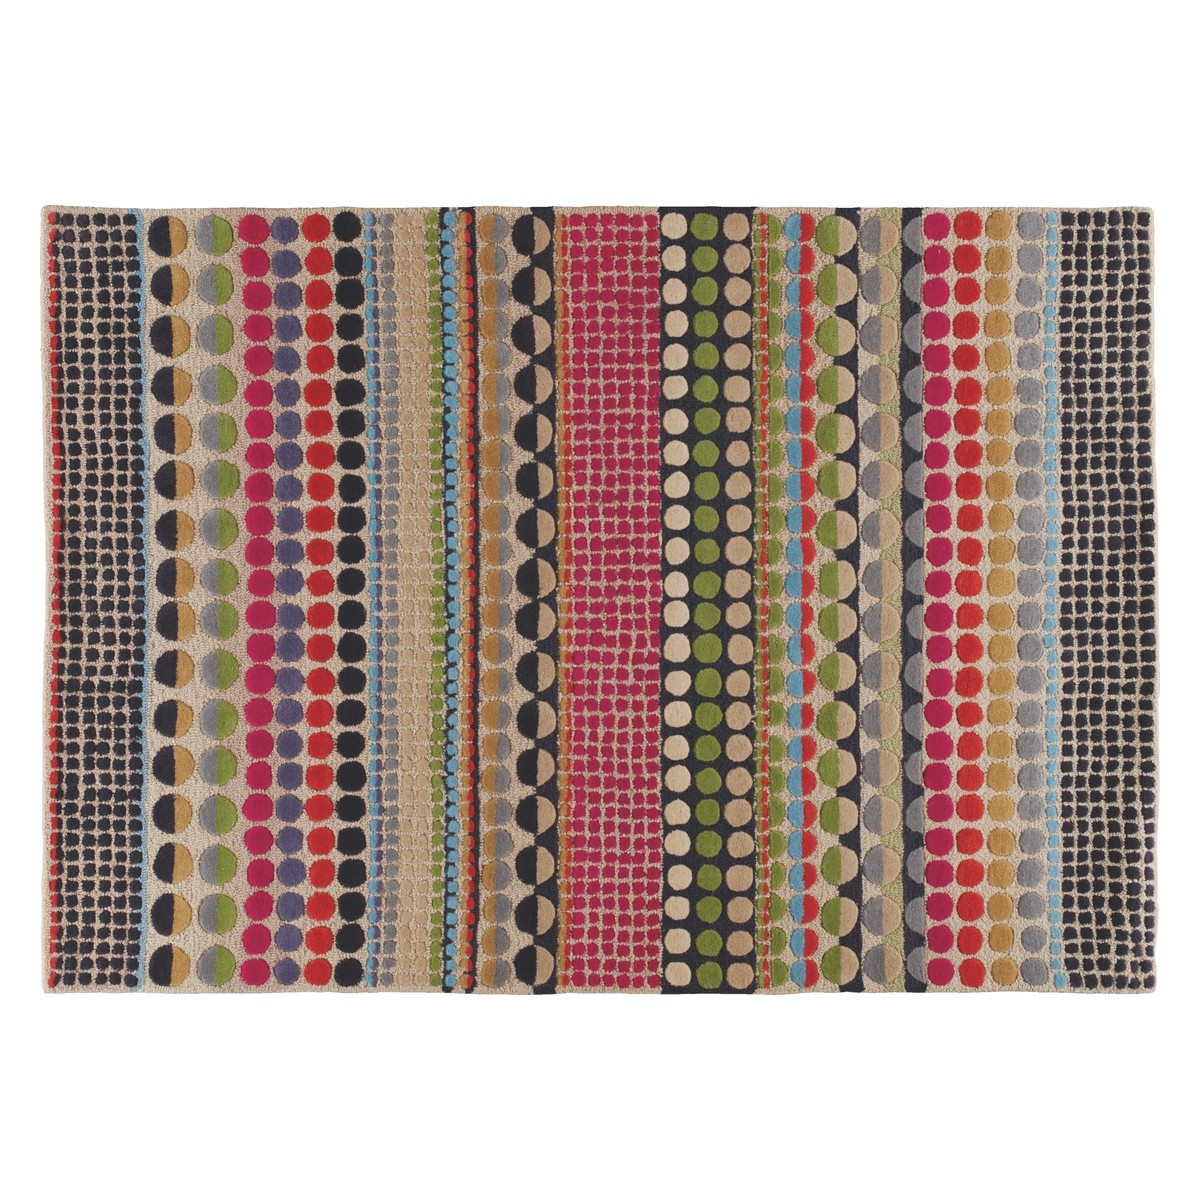 Rugs Runners Modern Large Small Rugs For Sale Habitat Regarding Large Geometric Rugs (Image 15 of 15)